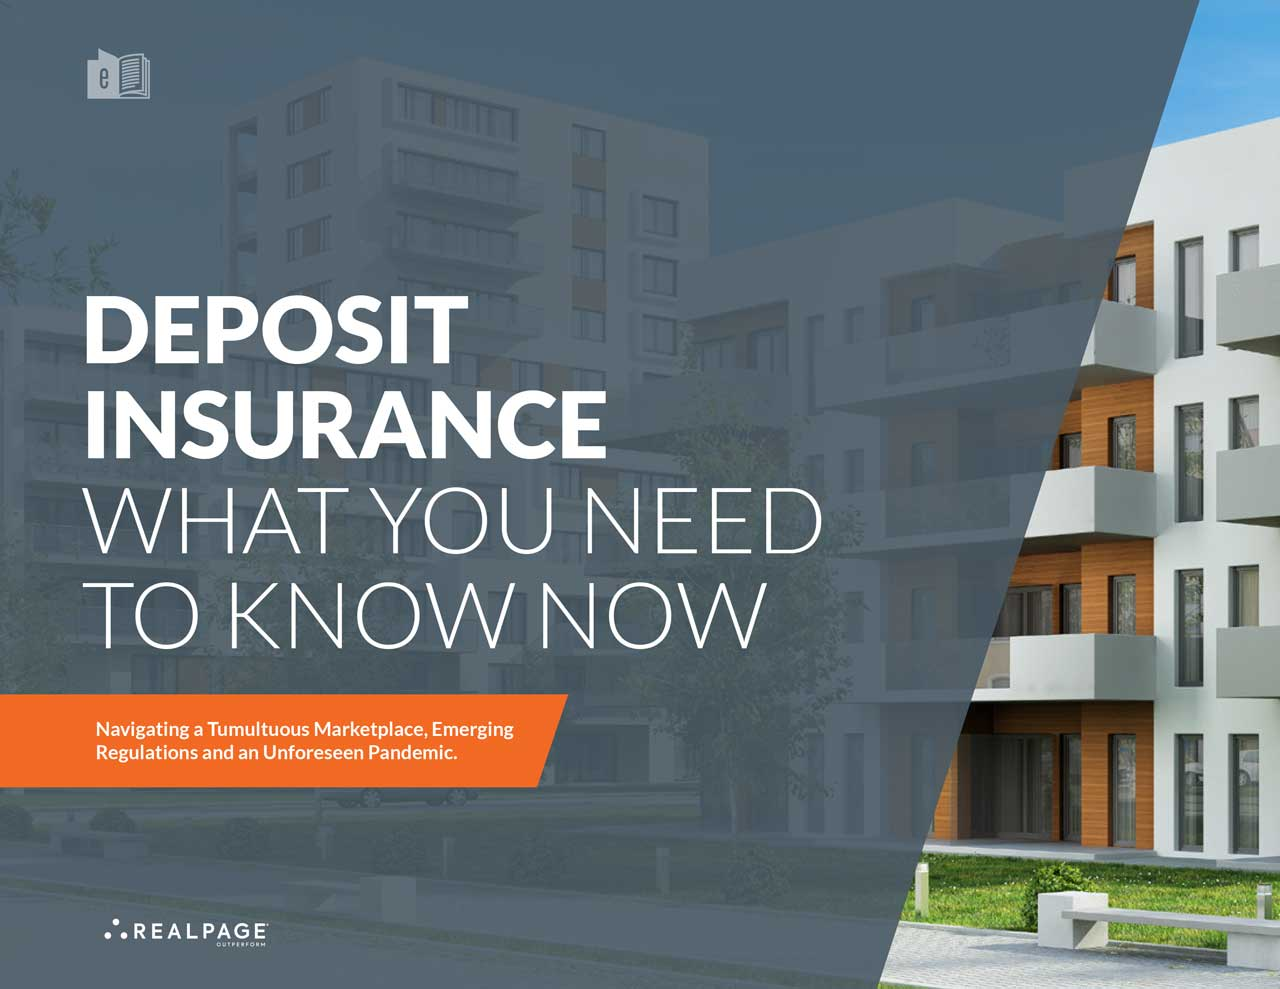 realpage deposit insurance – the security deposit alternative that's a true win-win